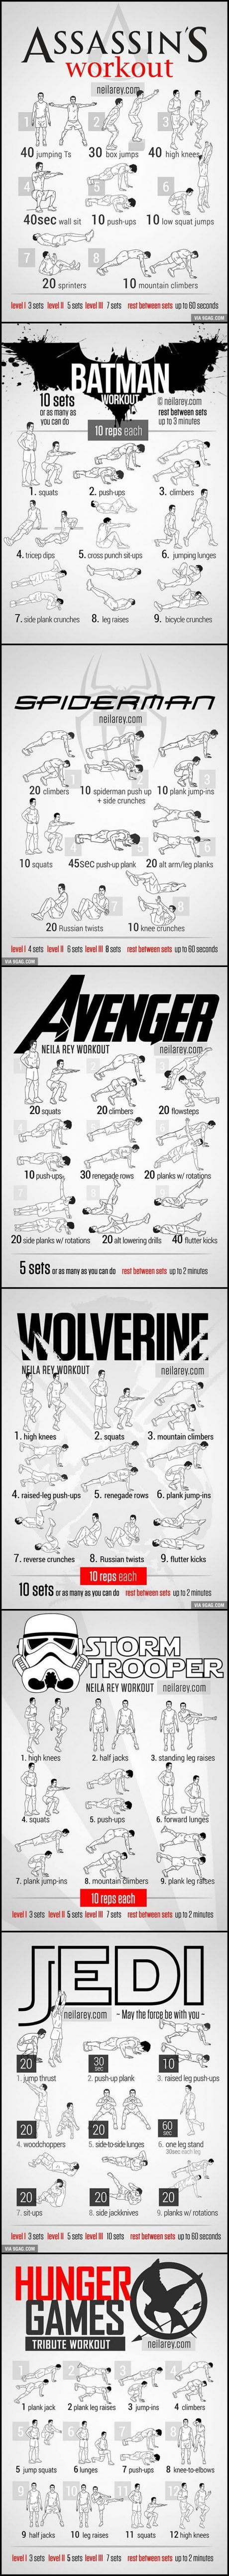 Workout for Assassin, Batman, Spiderman, Avenger, Wolverine... - visit to grab an unforgettable cool 3D Super Hero T-Shirt!